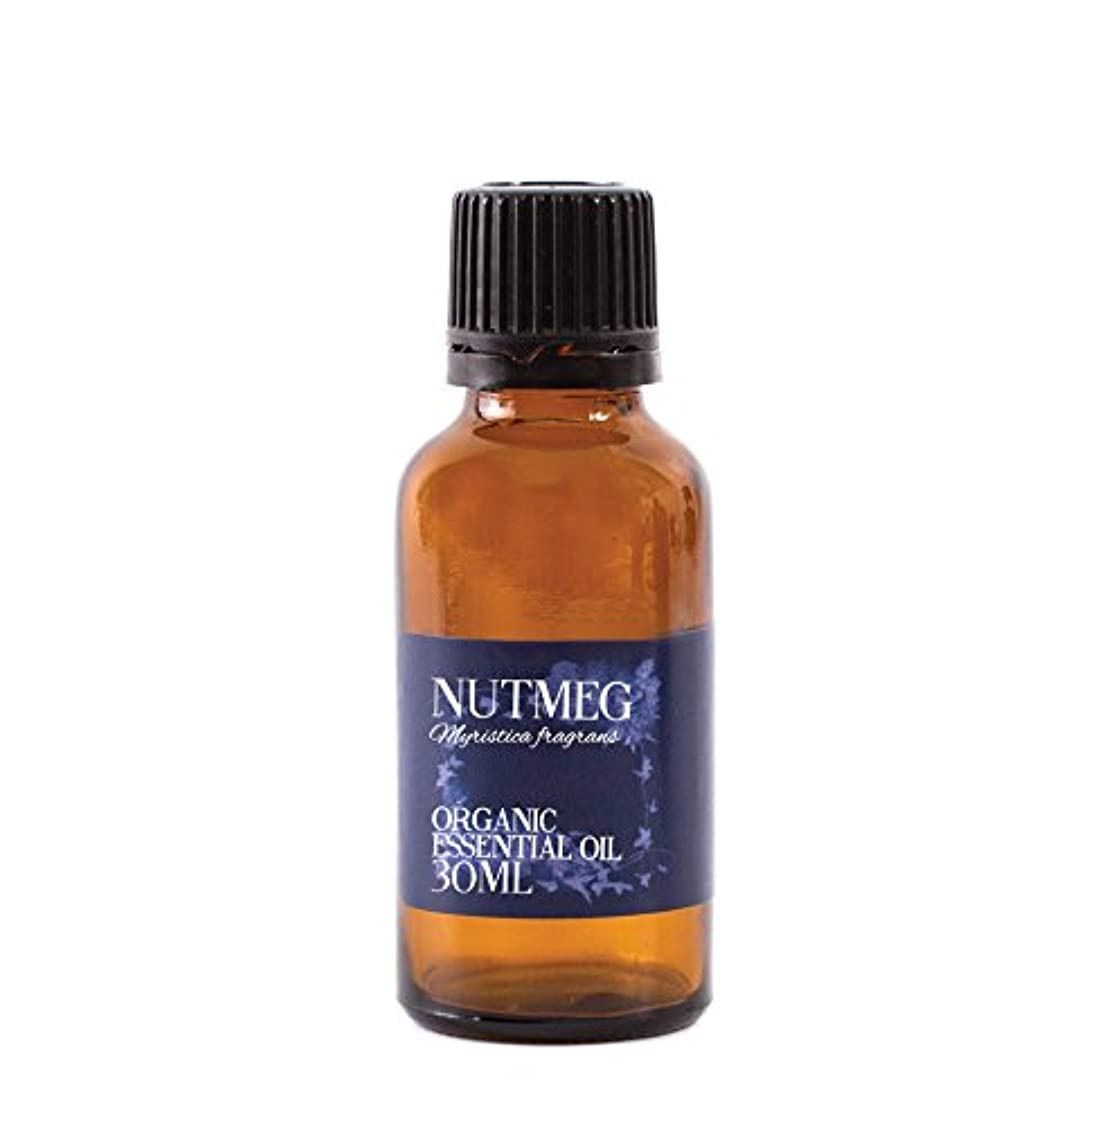 Nutmeg Organic Essential Oil - 30ml - 100% Pure